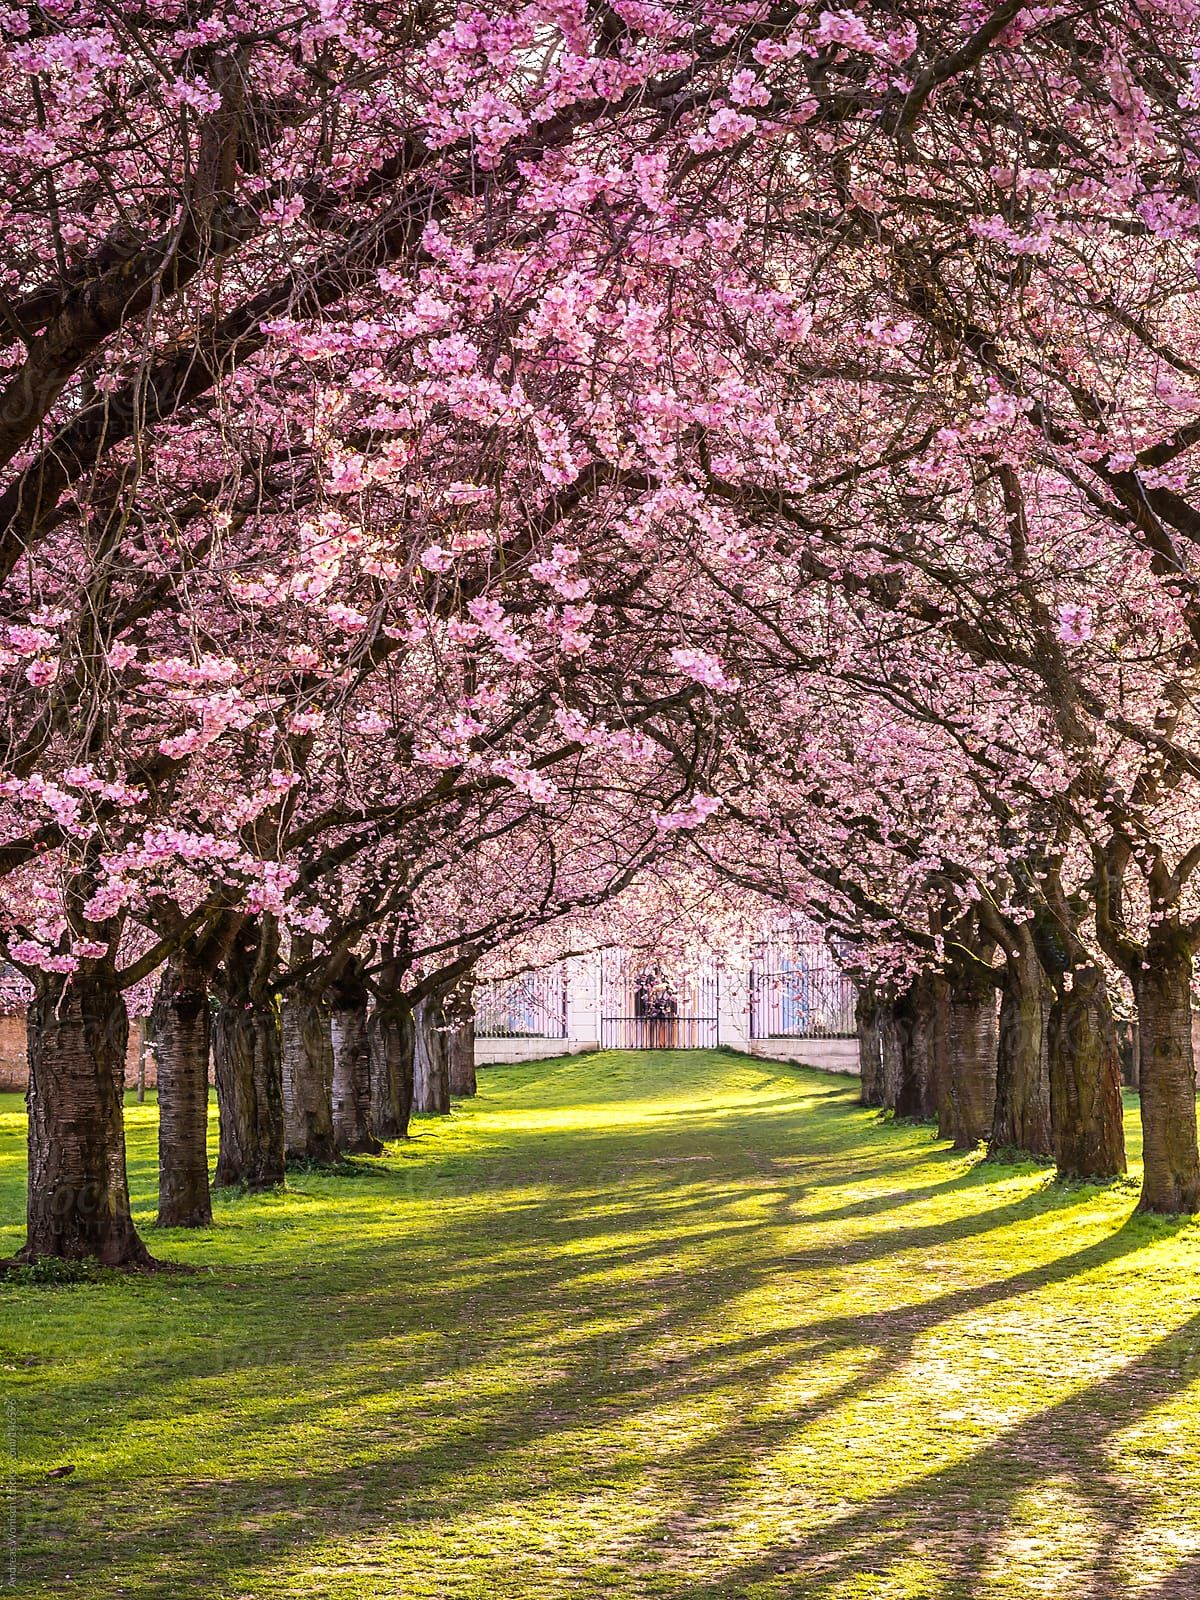 Flowering Cherry Blossom Photographed During Spring In The Schwetzinger Schlossgarten In Germany Spring Scenery Tree Photography Beautiful Tree